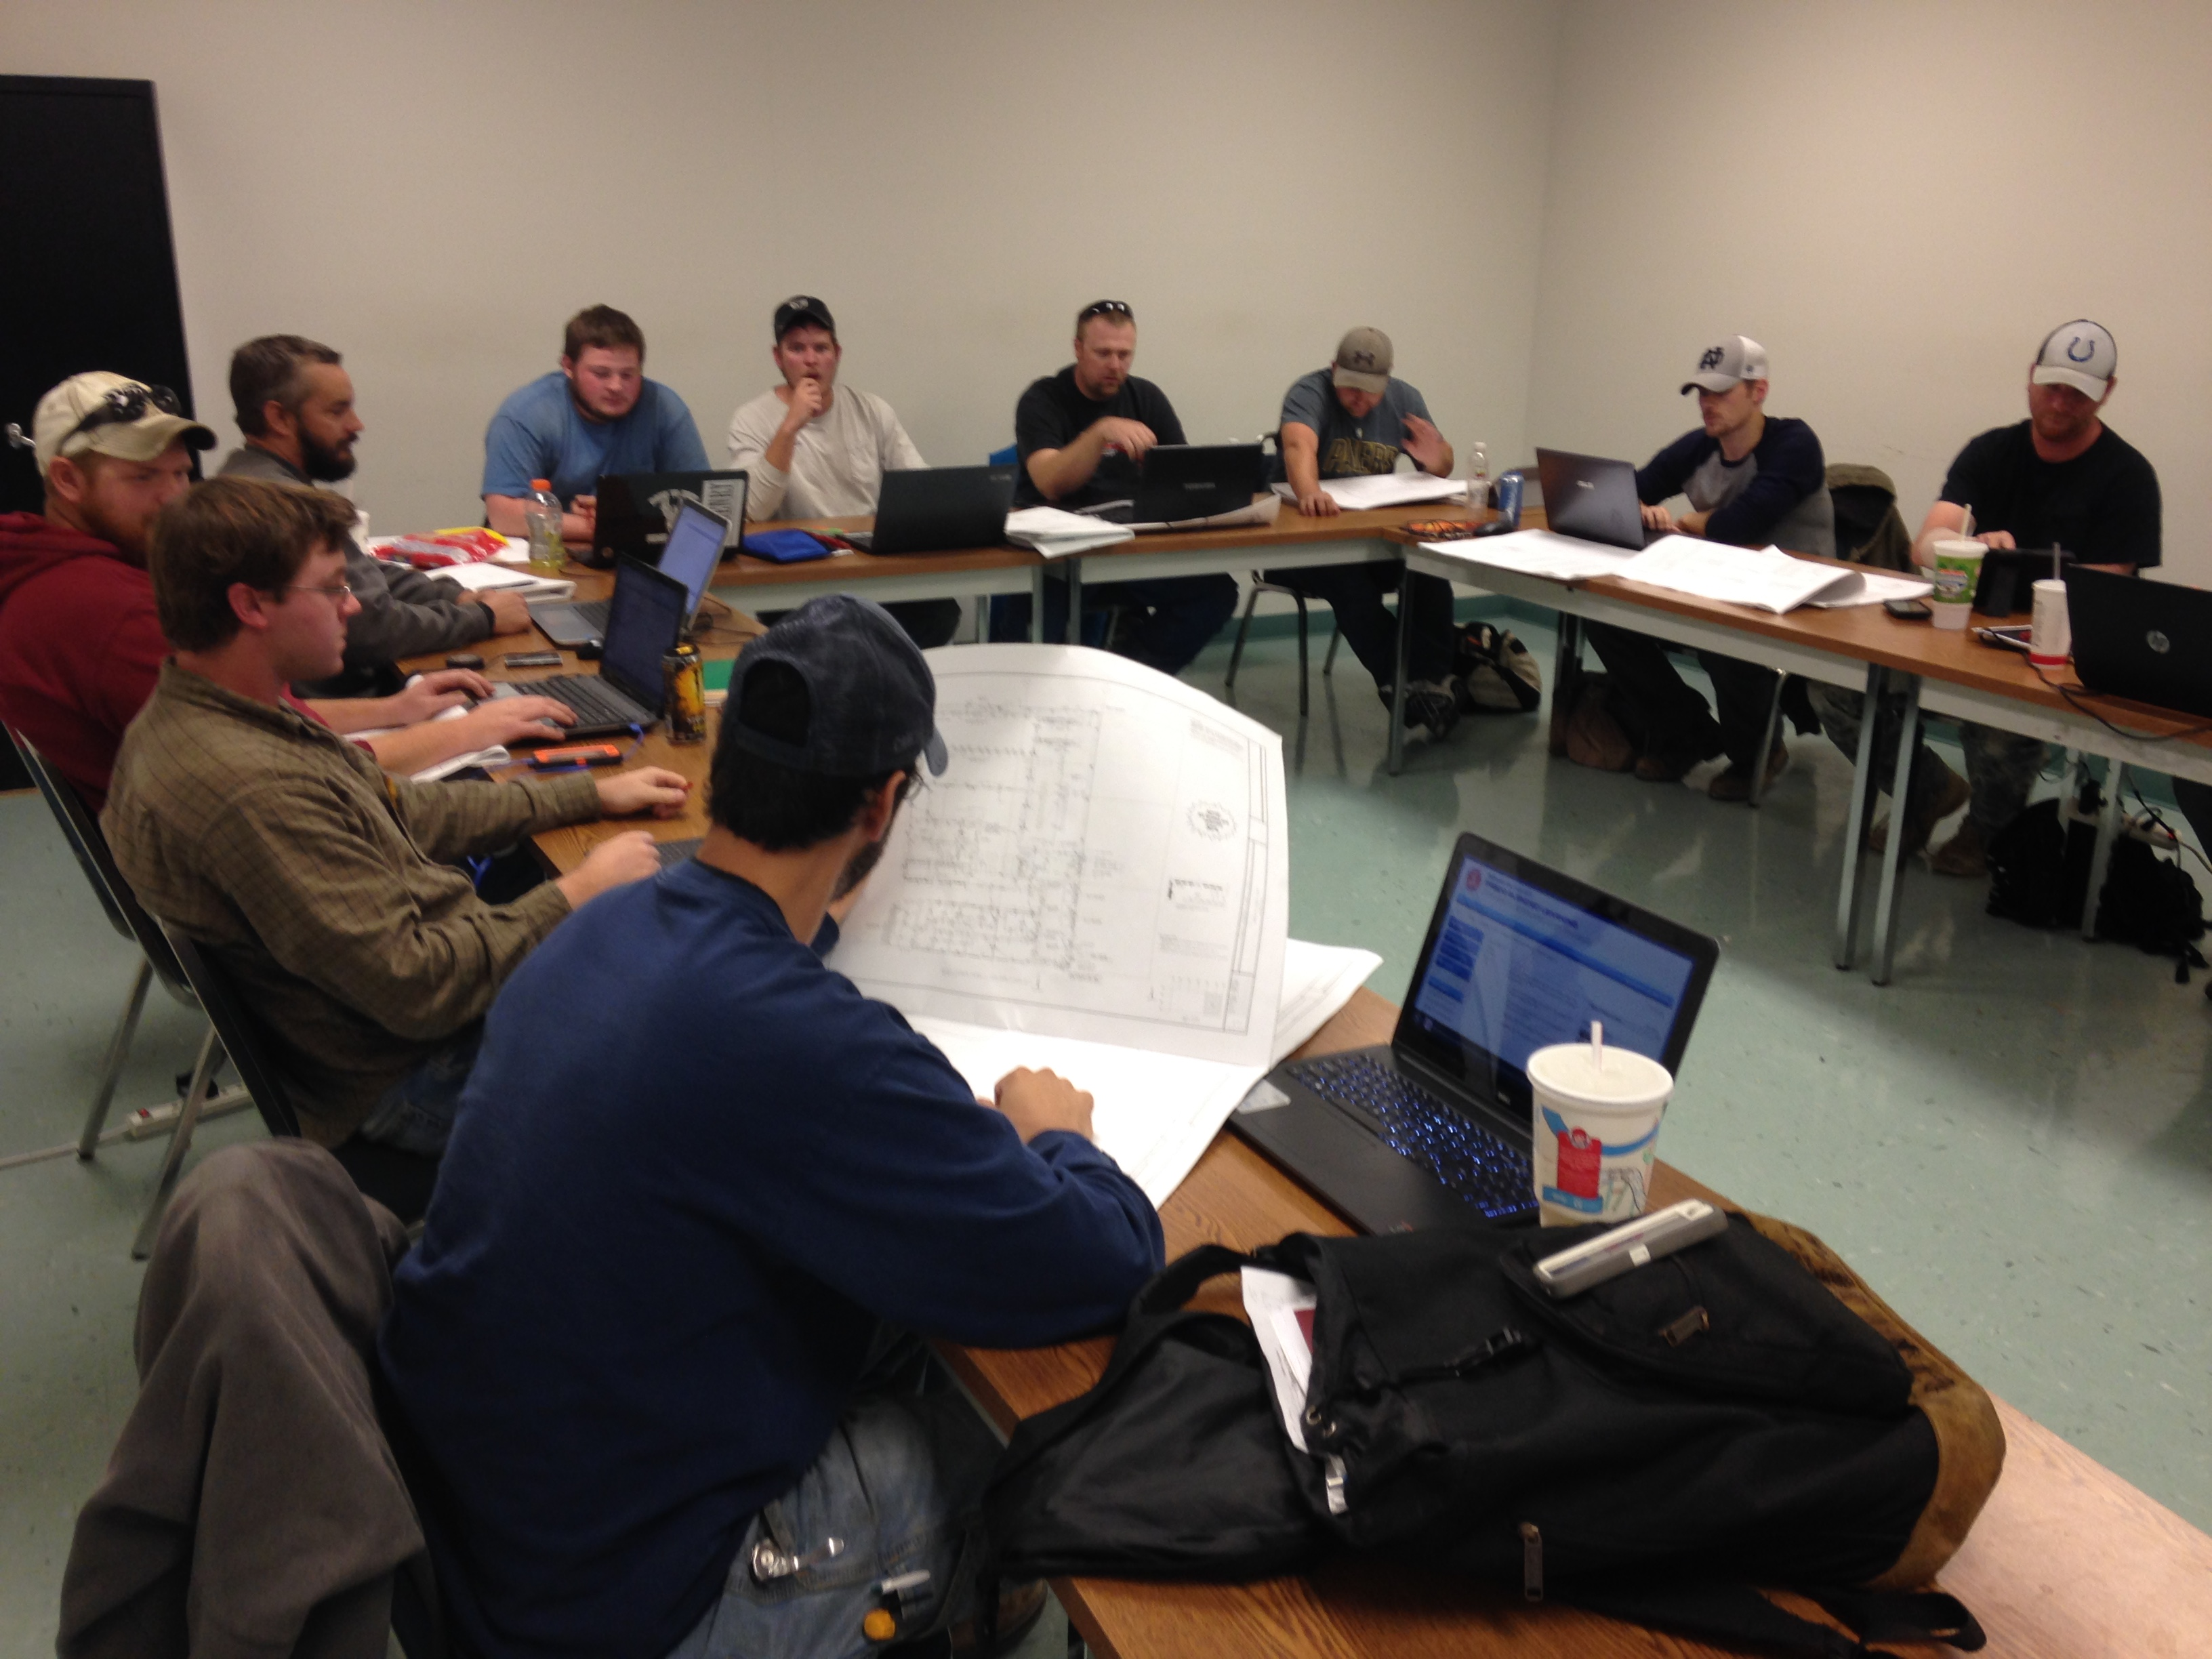 Students in a classroom at the  NECA/IBEW Electrical Training School